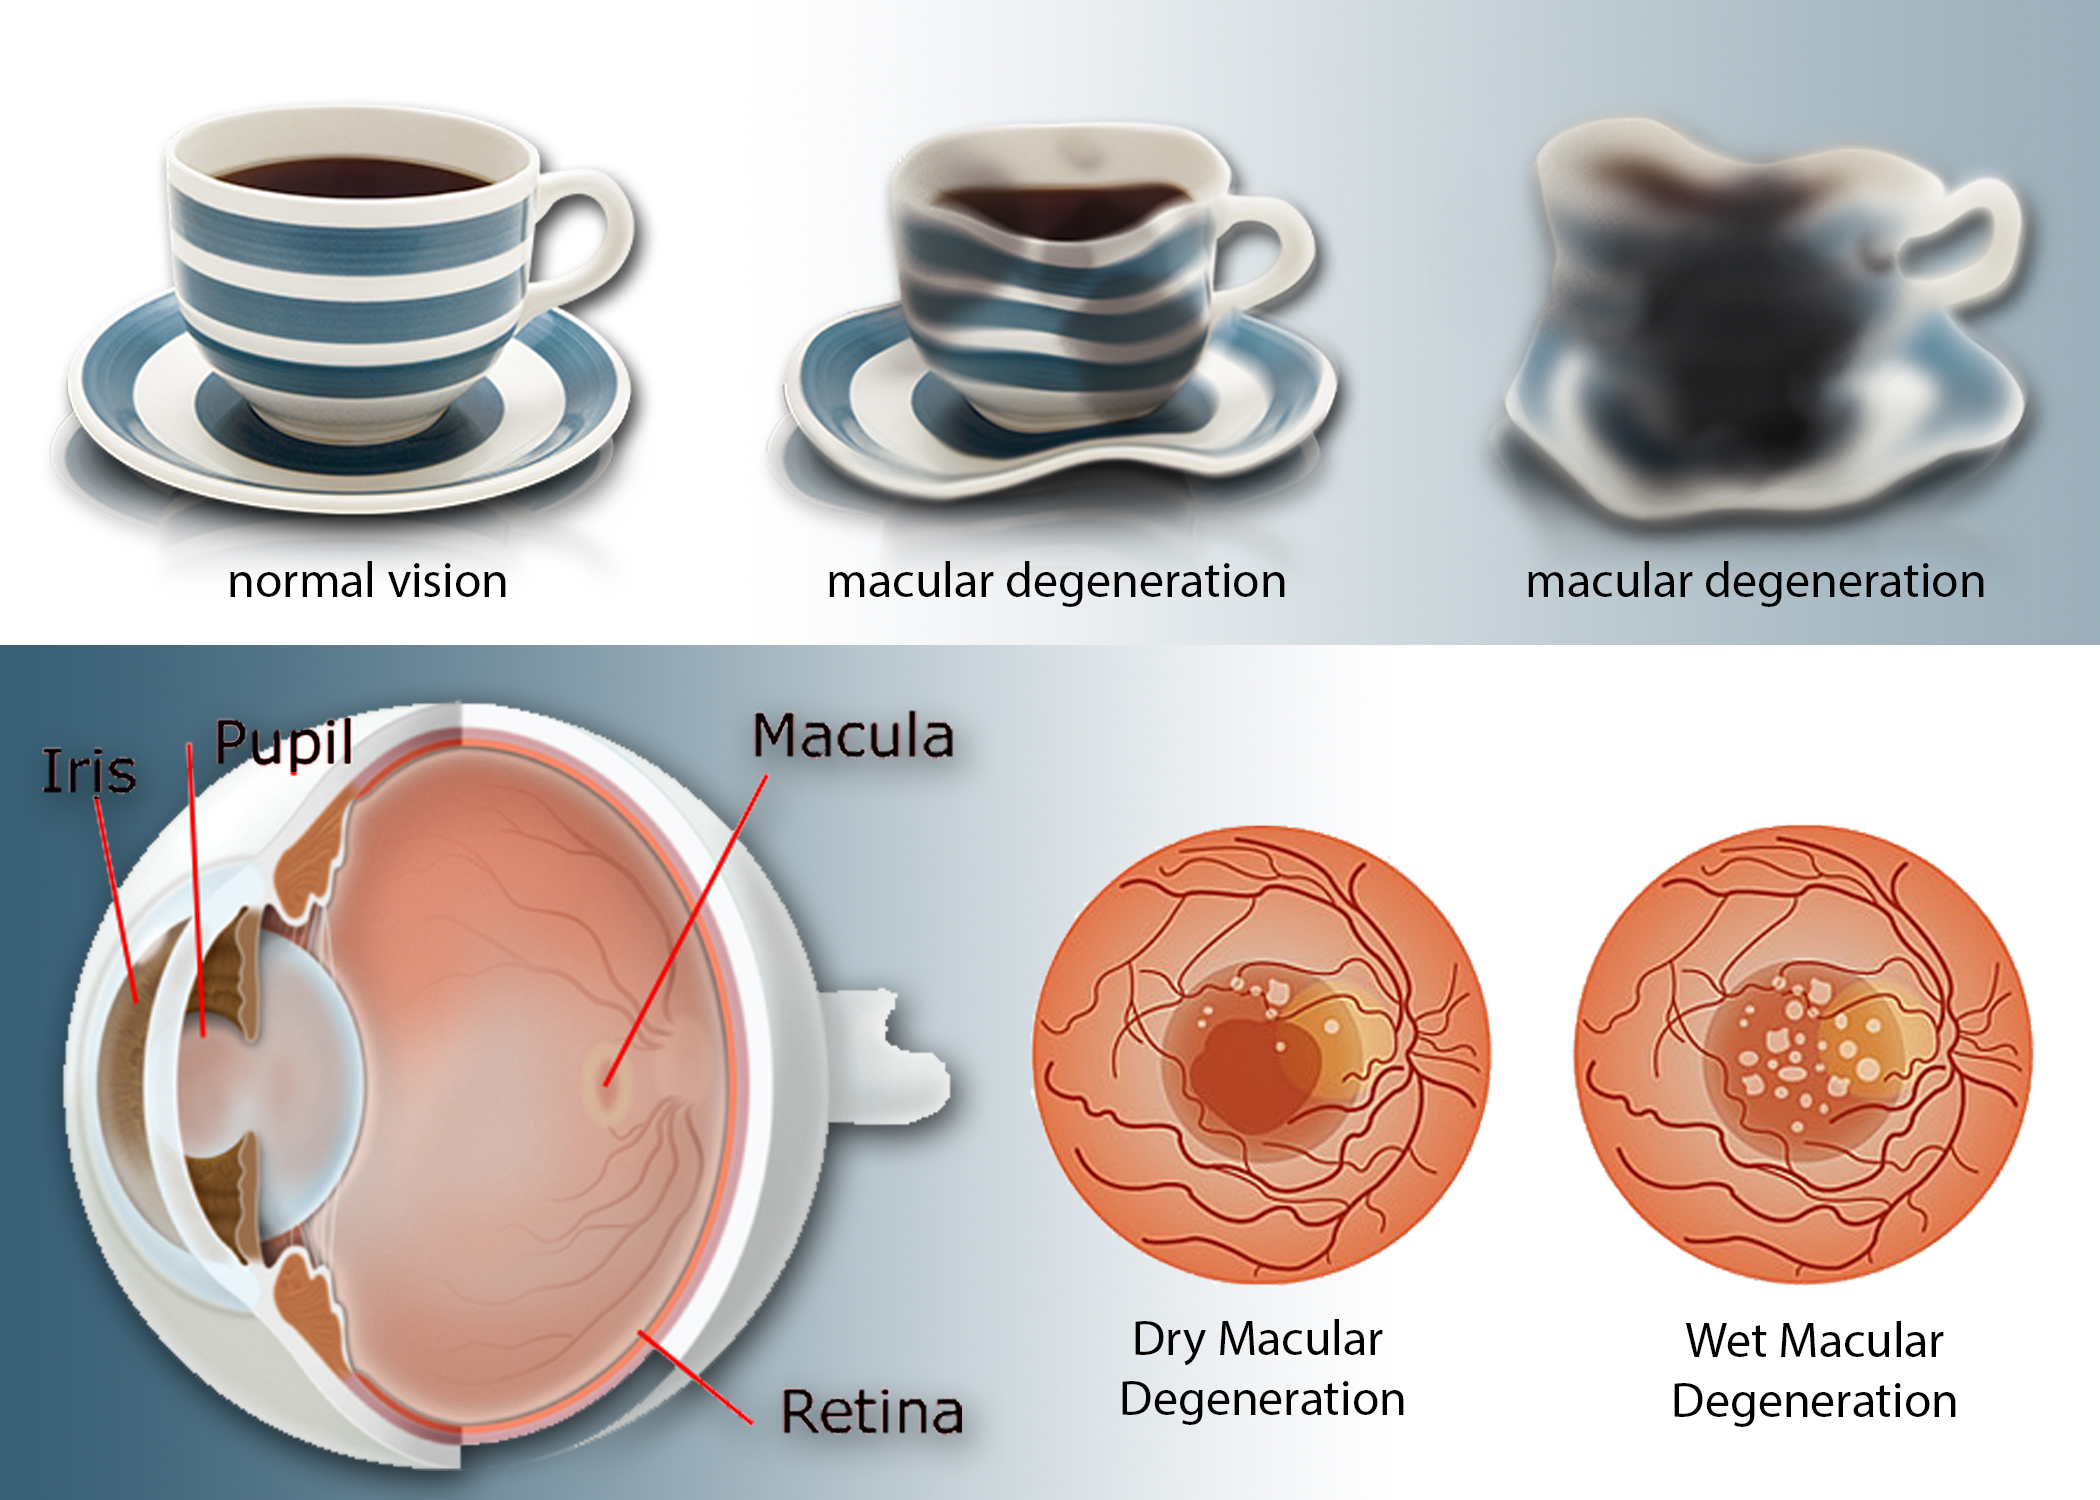 A representation of possible visual effects of macular degeneration